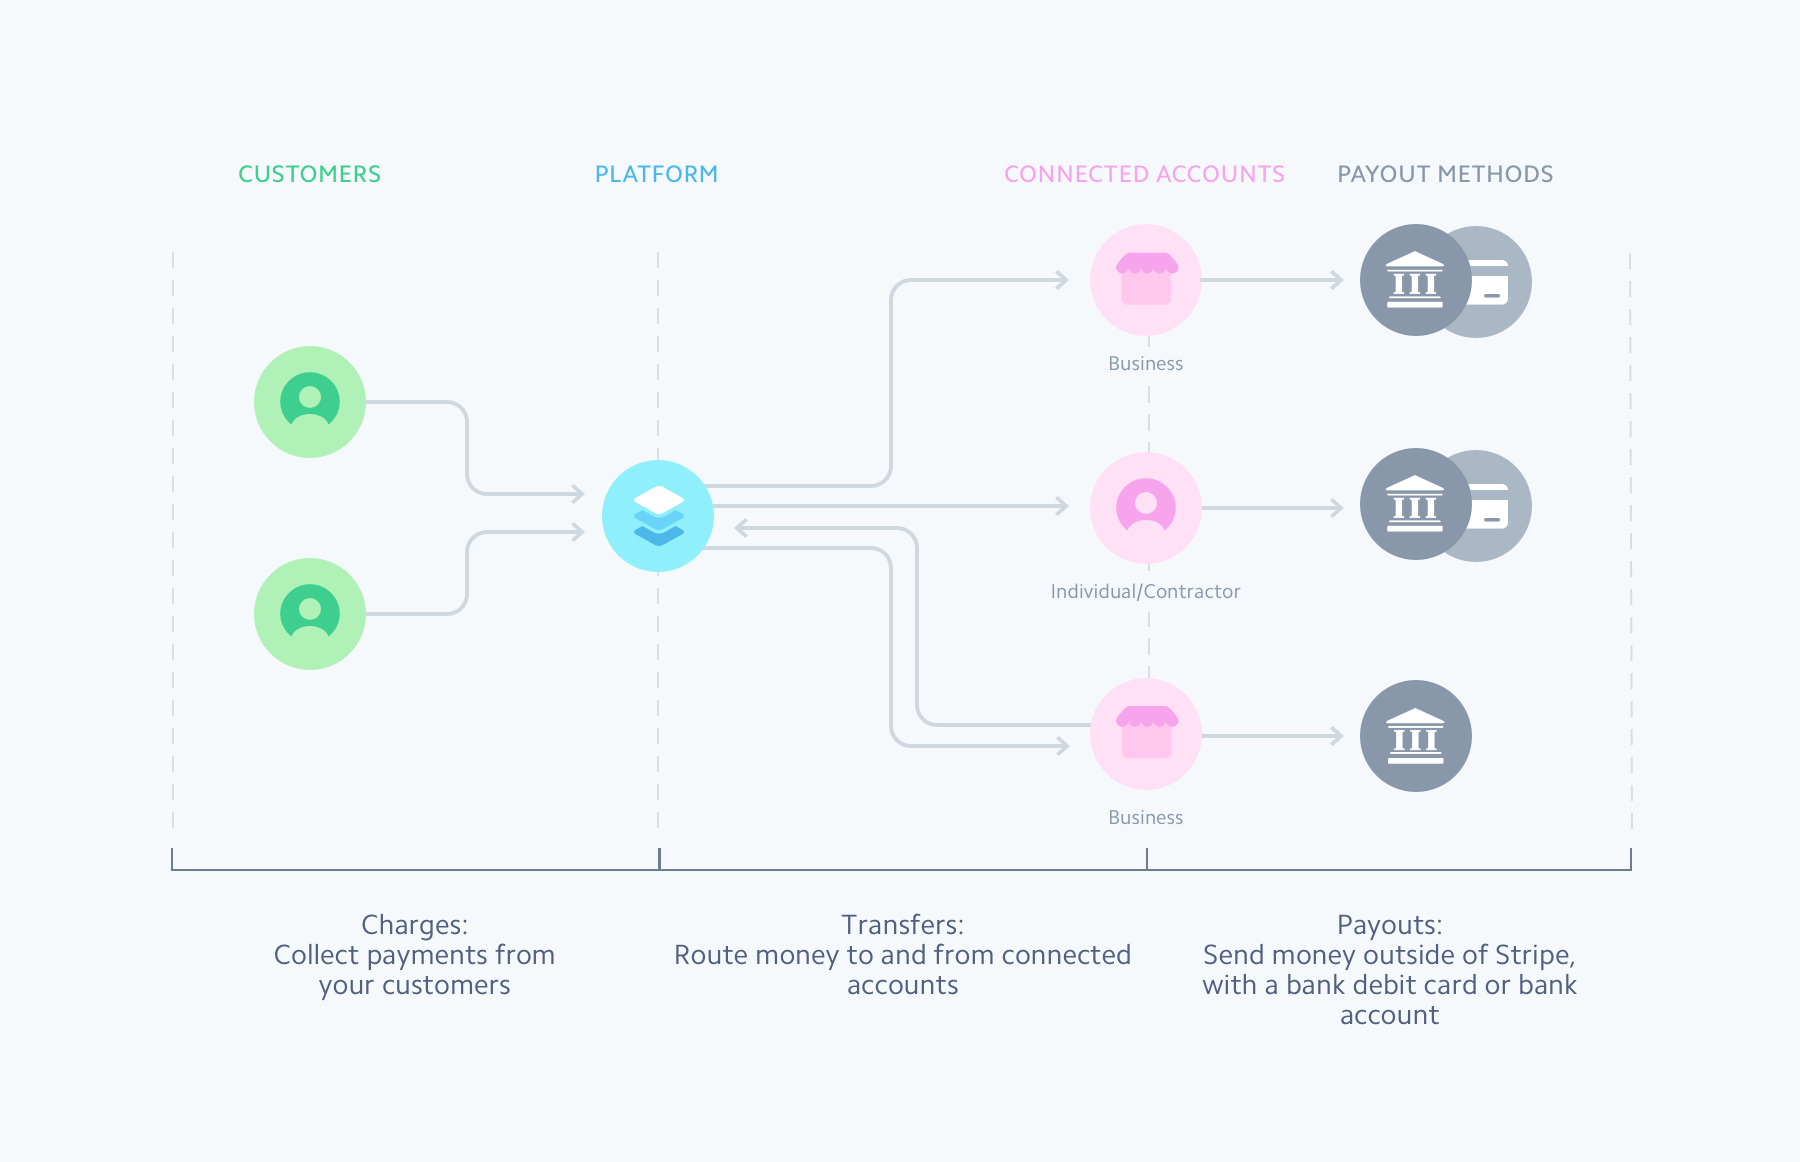 hight resolution of with connect you can process payments from customers transfer money to and from connected accounts and pay out funds to bank accounts and debit cards